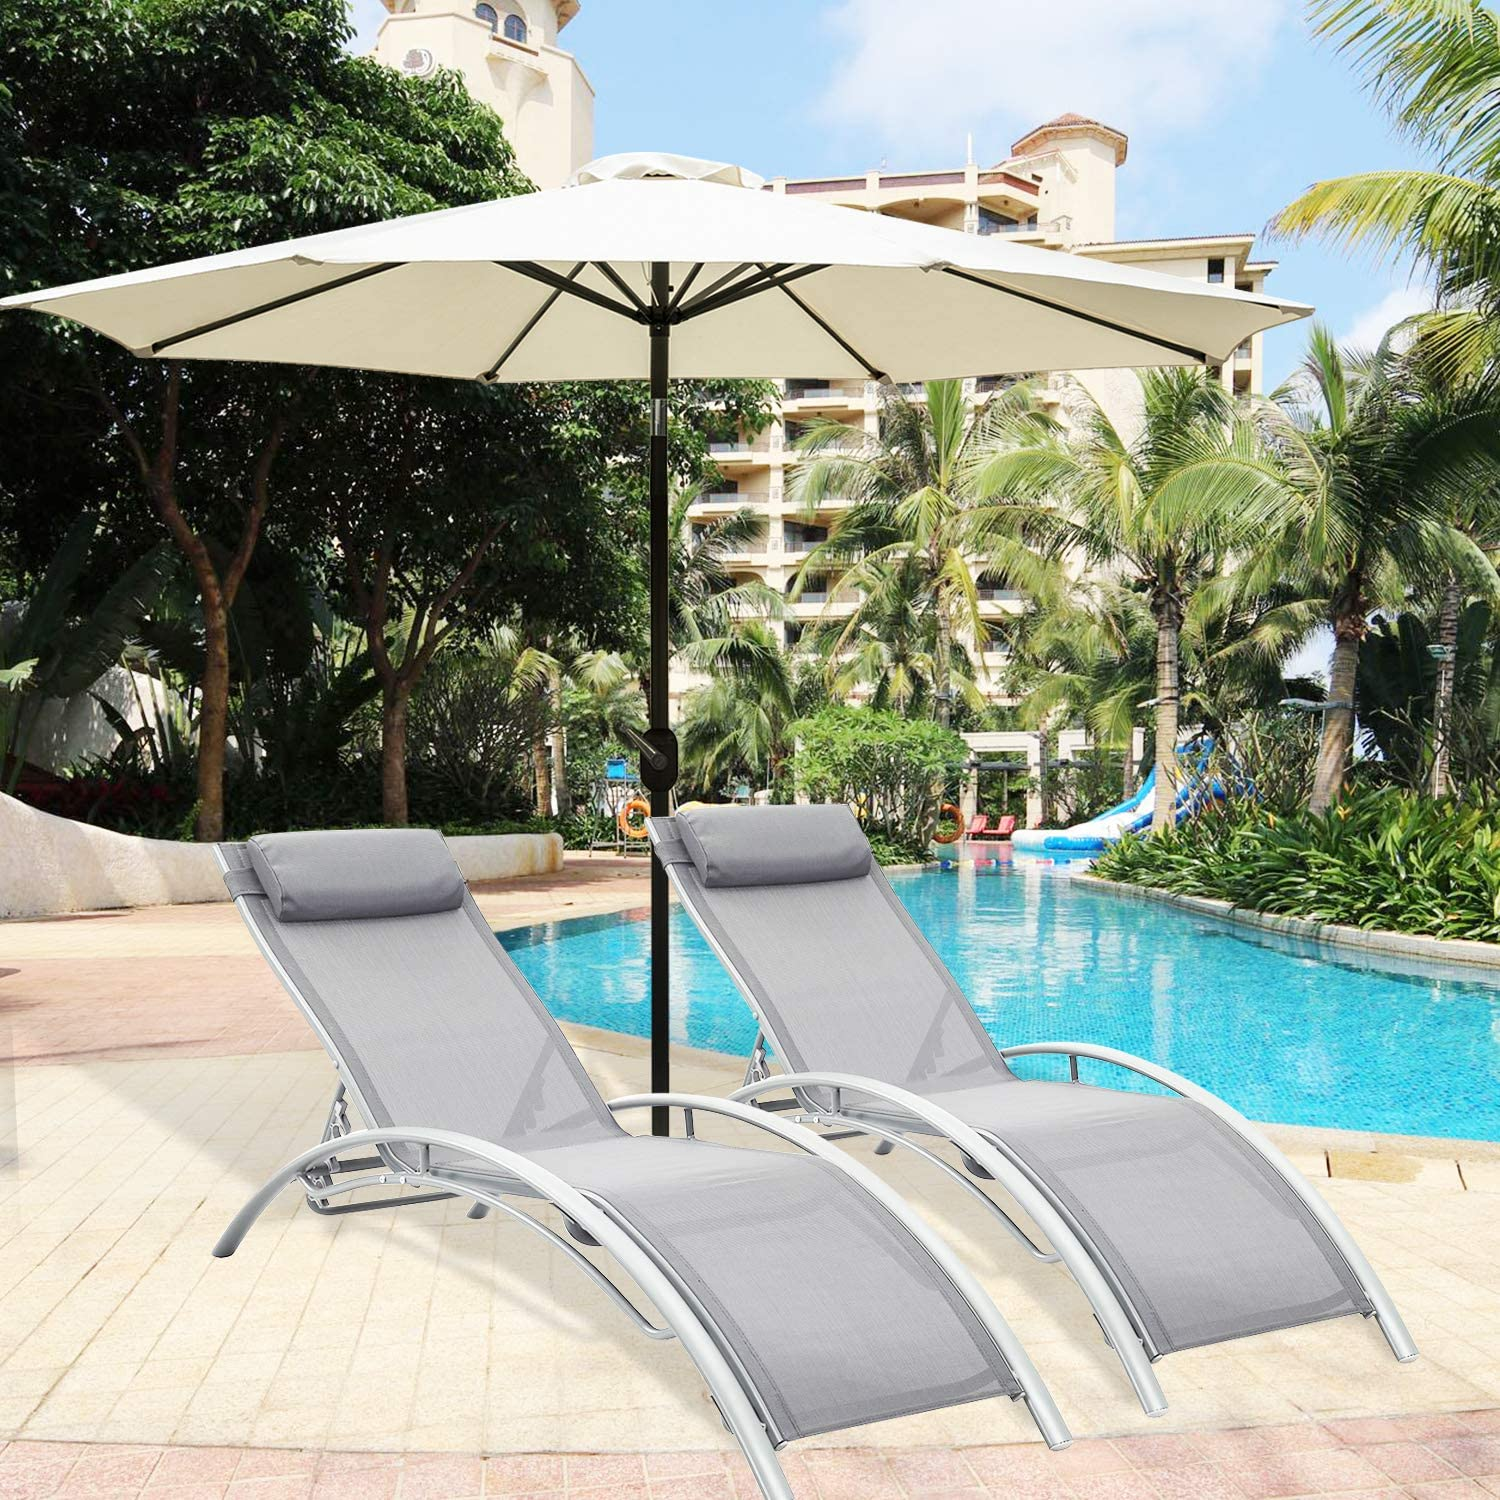 2 PCS White Aluminum Adjustable Chaise Lounge Chairs Outdoor with Pillow Zero Gravity